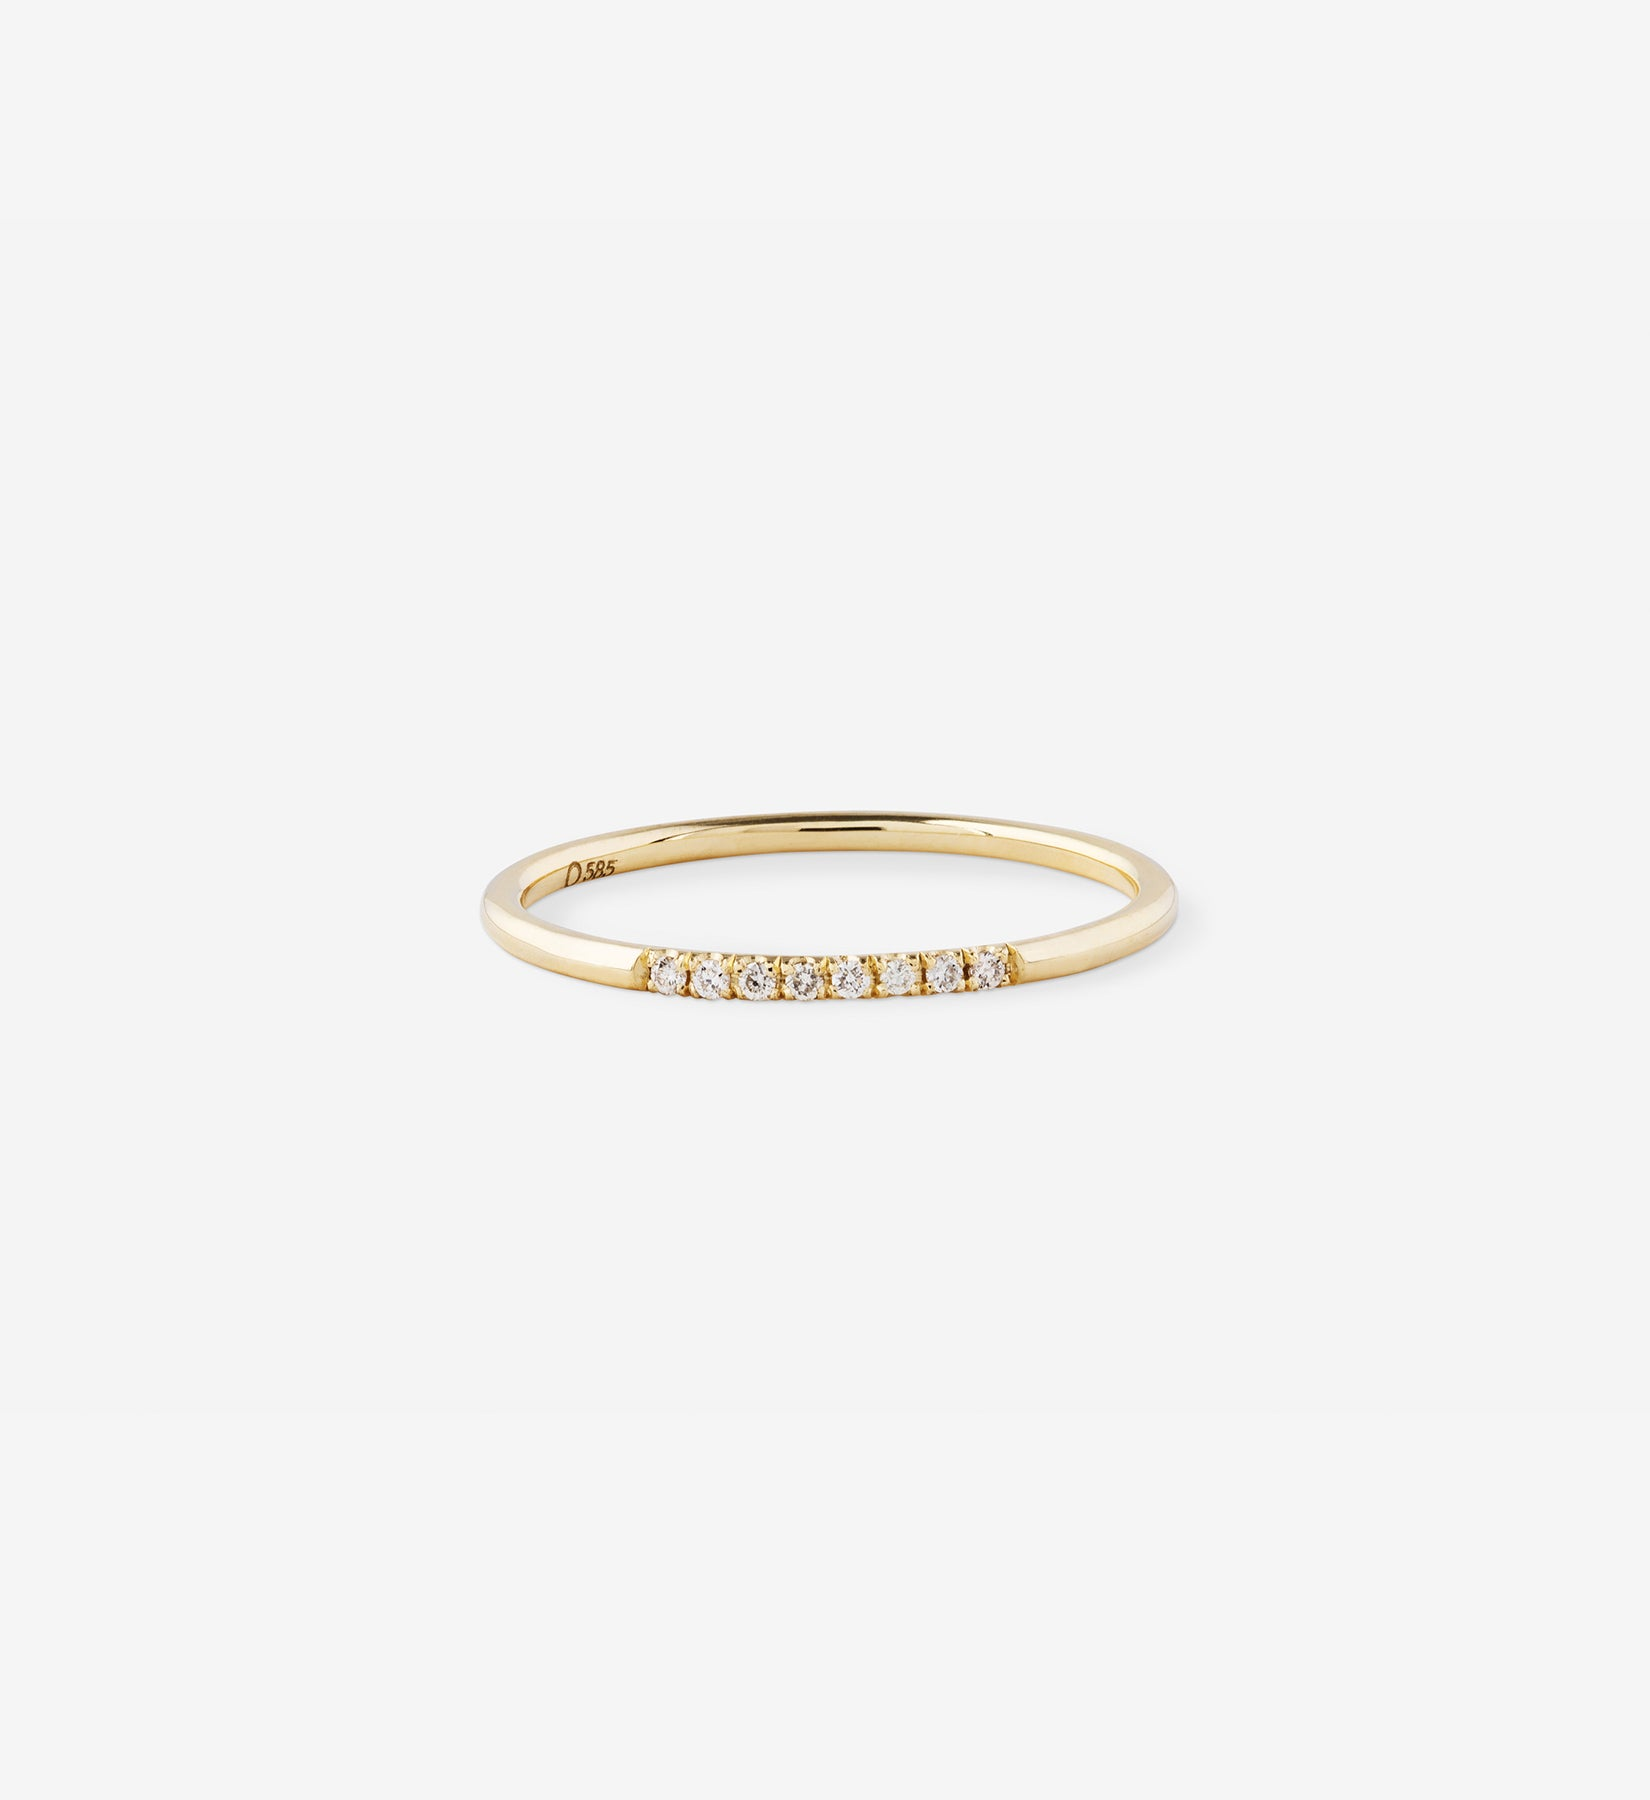 OUVERTURE, Fine jewelry, 14K gold, diamonds, golden ring, diamond ring, golden earring, diamond earring. Handcrafted jewelry. Designed in Berlin. Honestly priced. Demifine. Earparty. Stacking rings. Diamond Huggie, Huggie earring, golden huggie earring diamond line ring 0.04